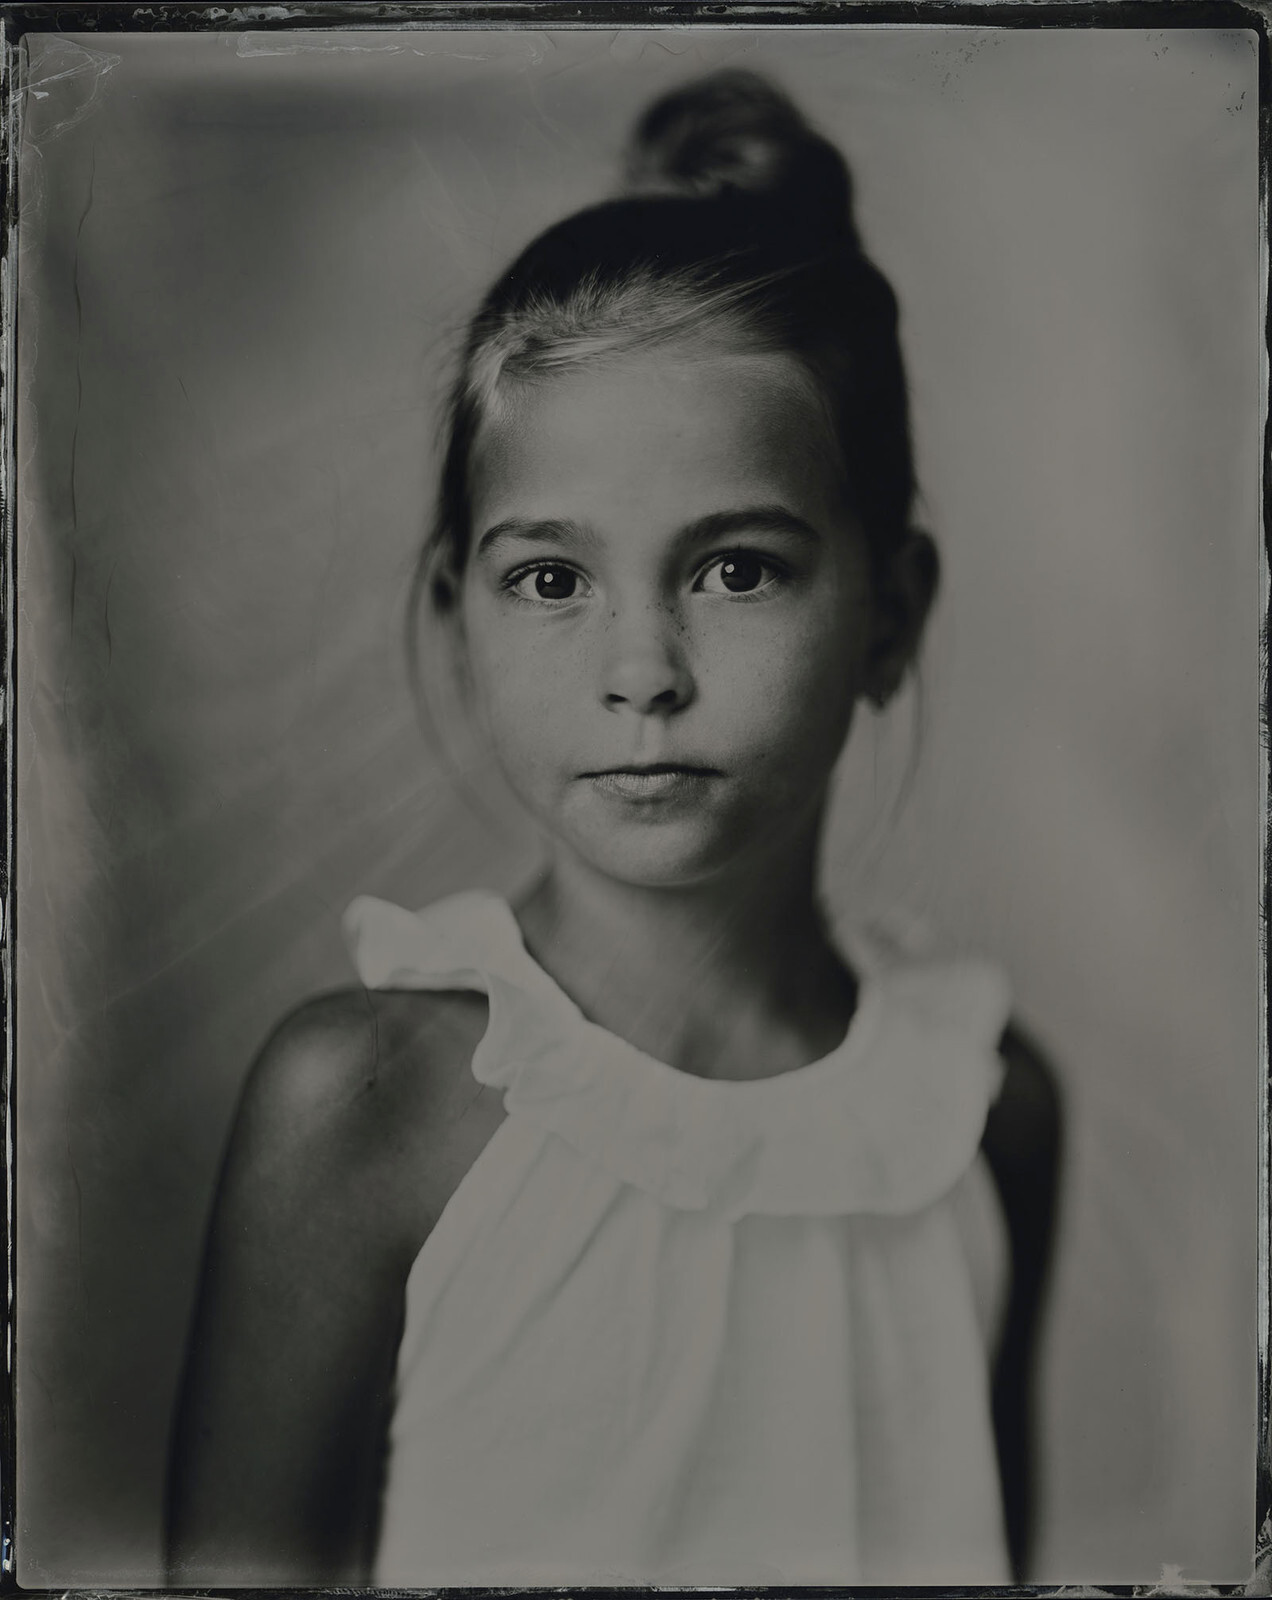 Lotta-Silver Portrait Store-Wet plate collodion-Tintype 20 x 25 cm.